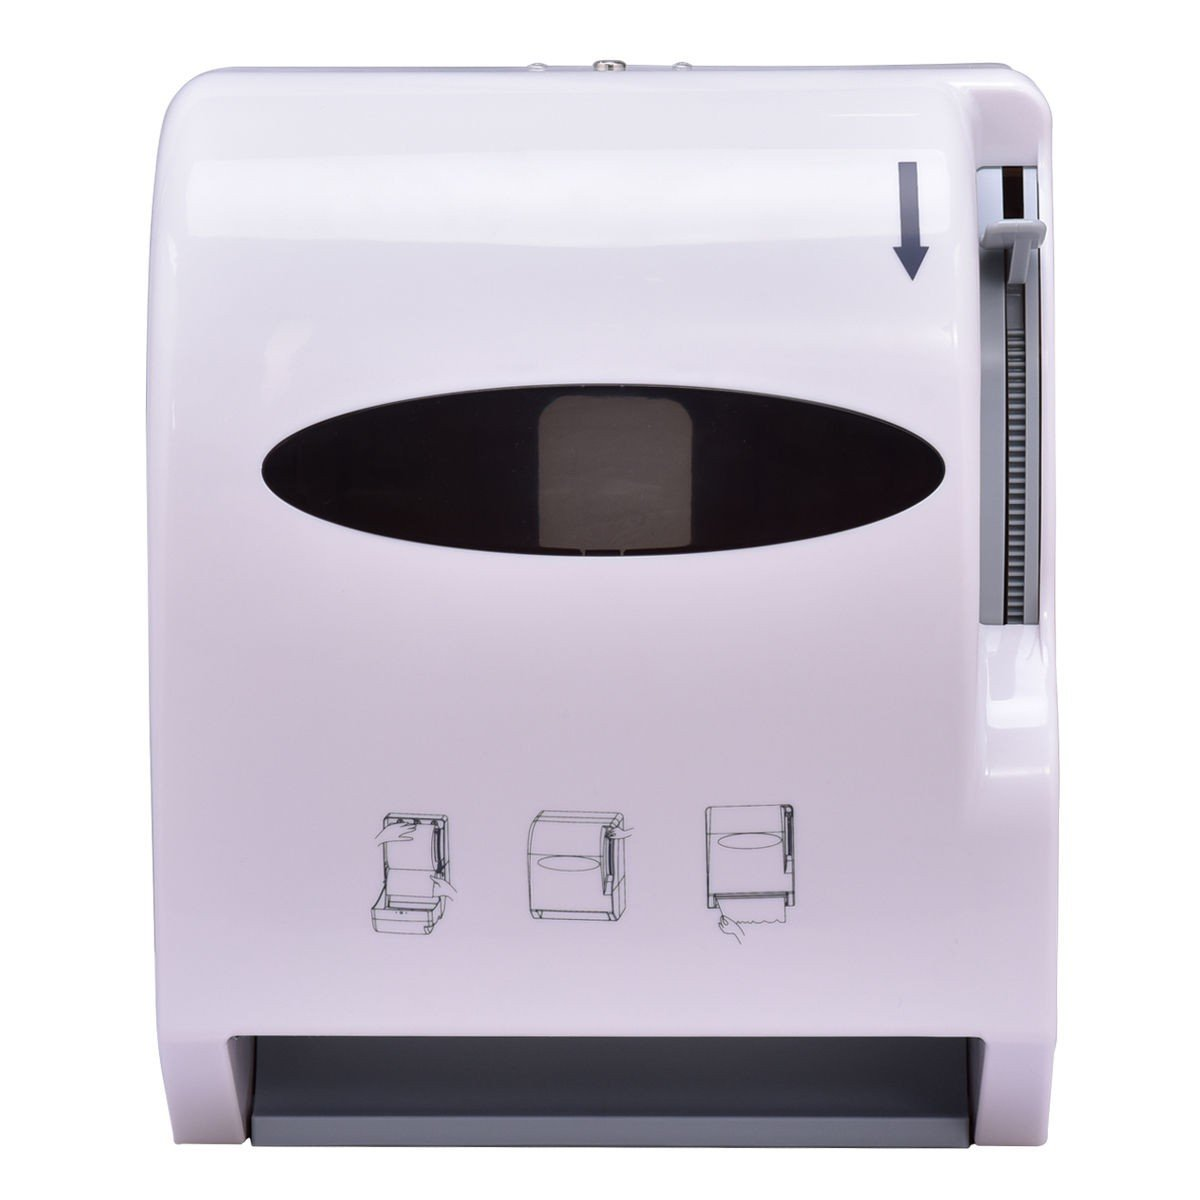 MyEasyShopping Durable Wall Mount Heavy Roll Paper Towel Dispenser Duty Commercial Bathroom Plastic White Black Tool Machine